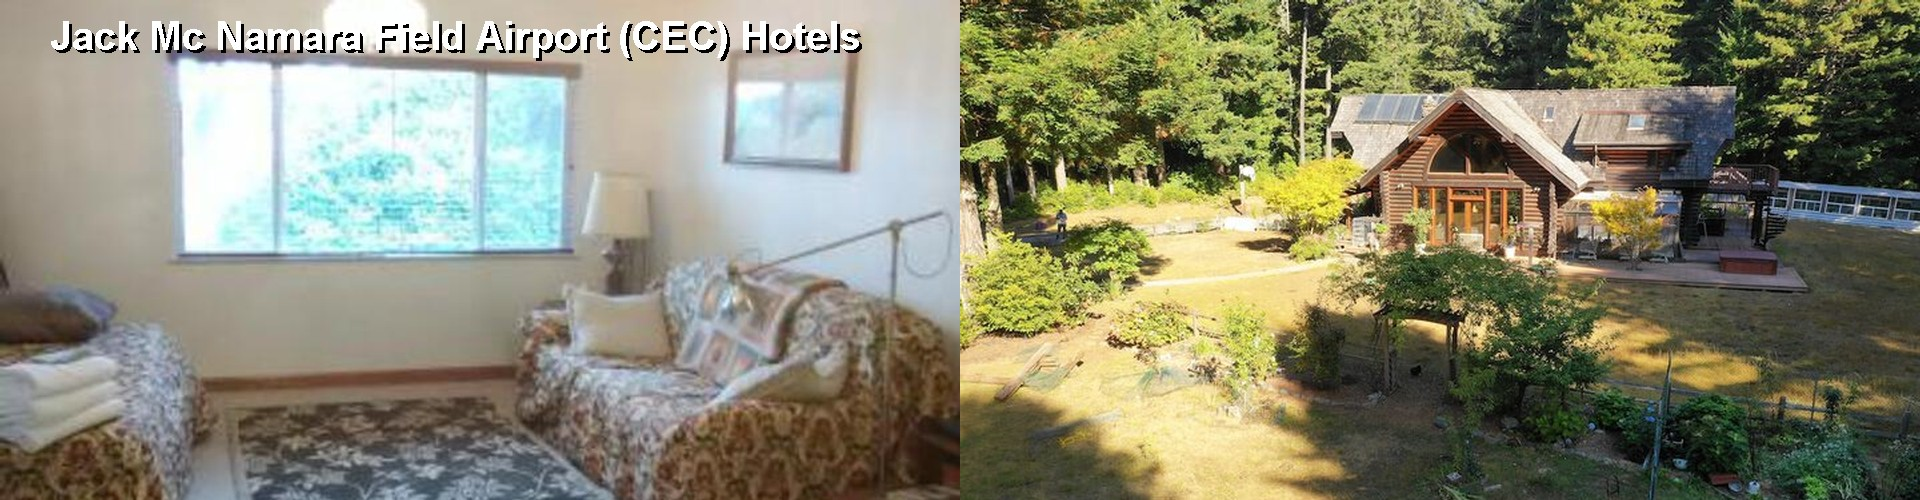 4 Best Hotels near Jack Mc Namara Field Airport (CEC)